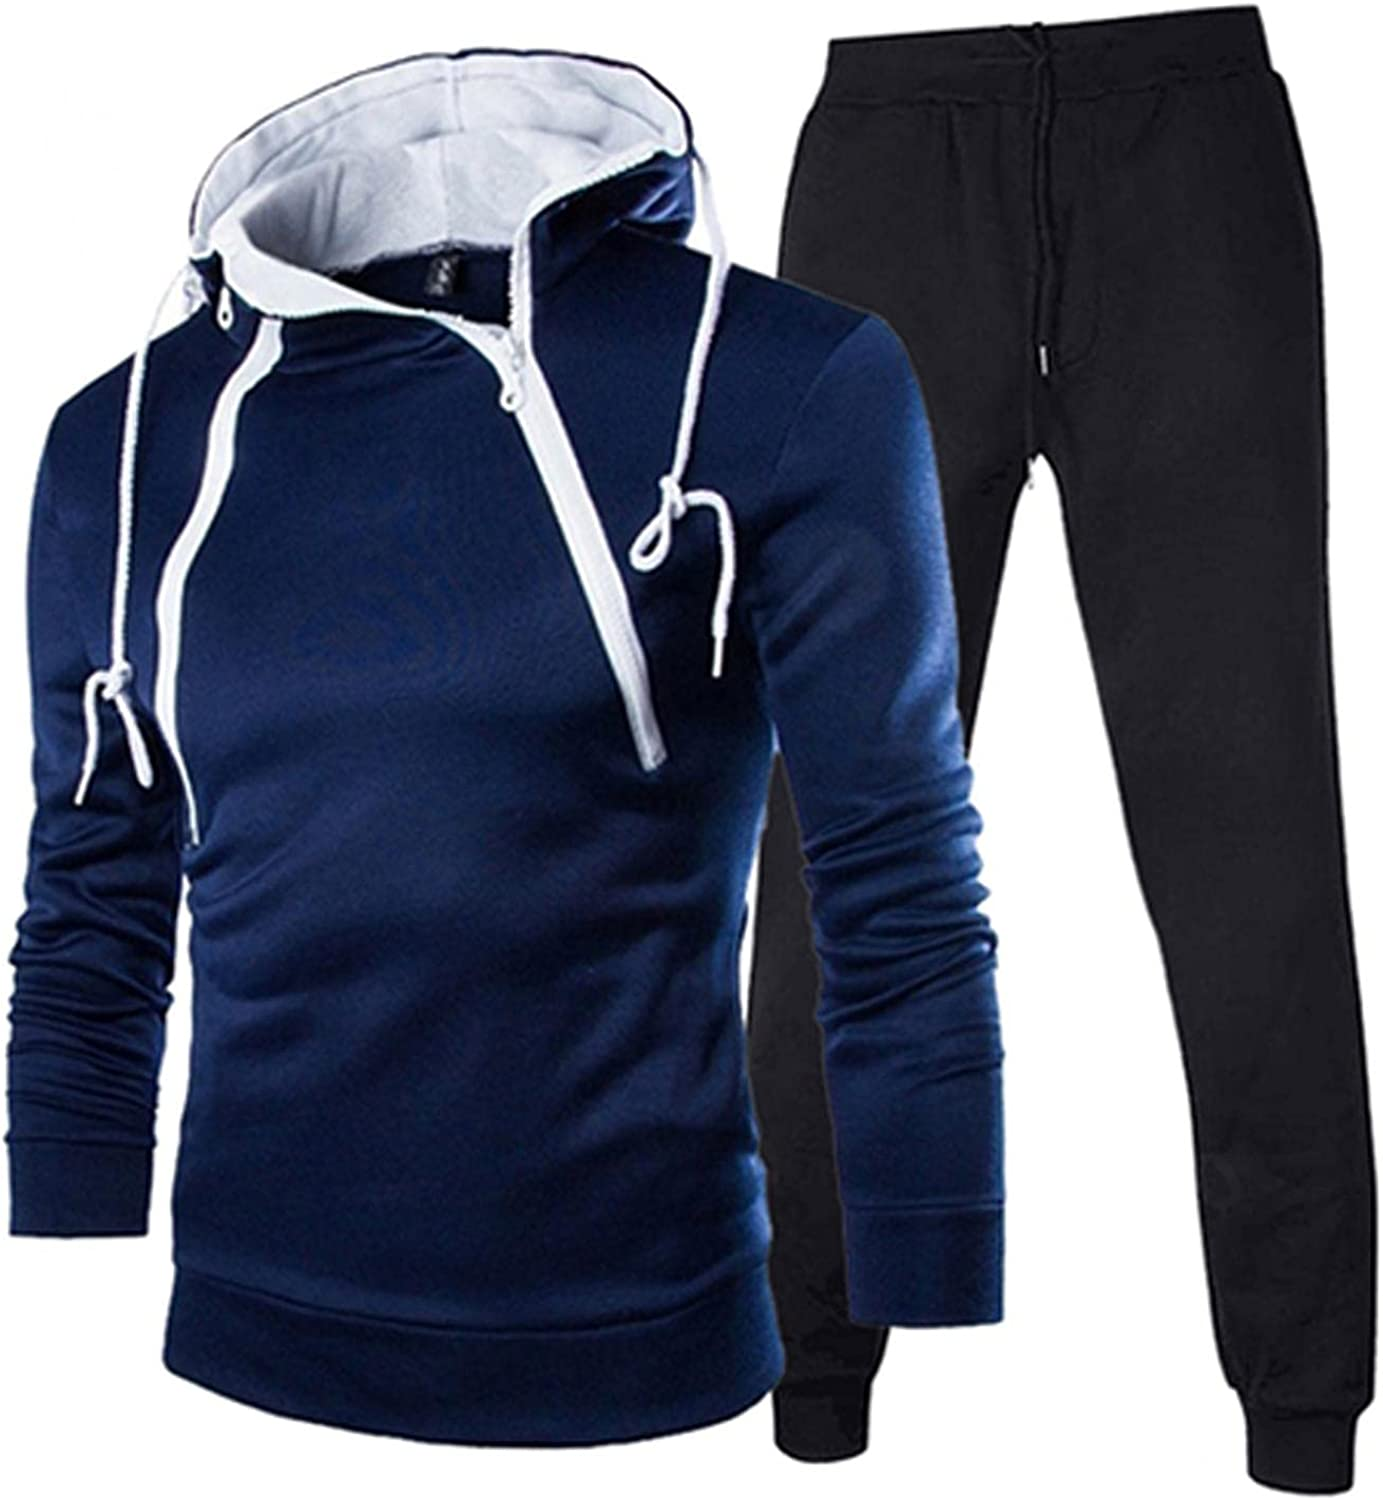 FUNEY Men's Hooded Athletic Tracksuit Casual Fashion Double Zipper Jogging Sweatsuits French Terry Hoodie and Jogger Sets